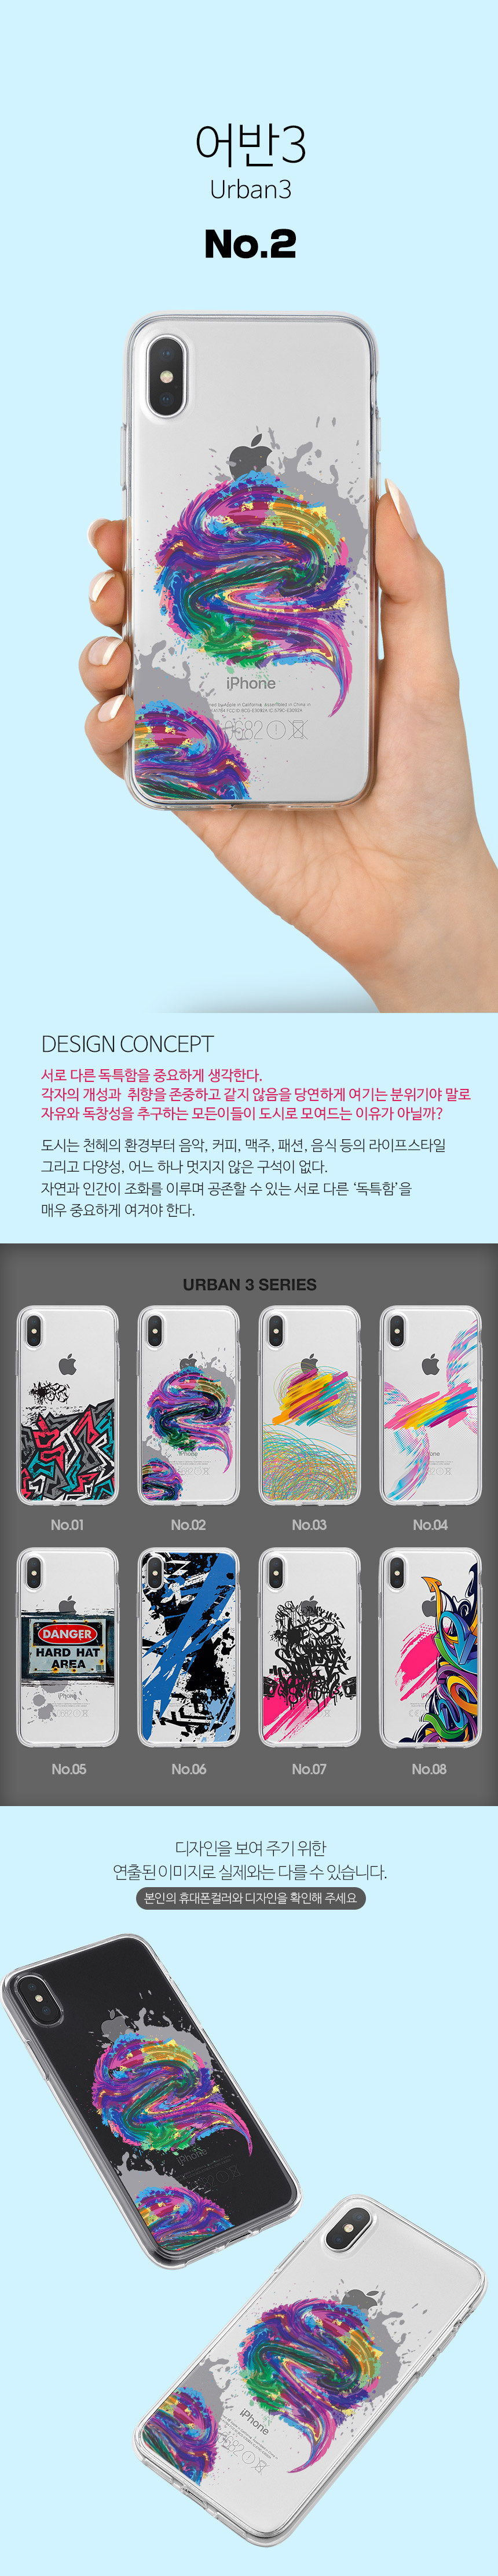 기키(GEEKY) [투명] phone case Urban3 No.2